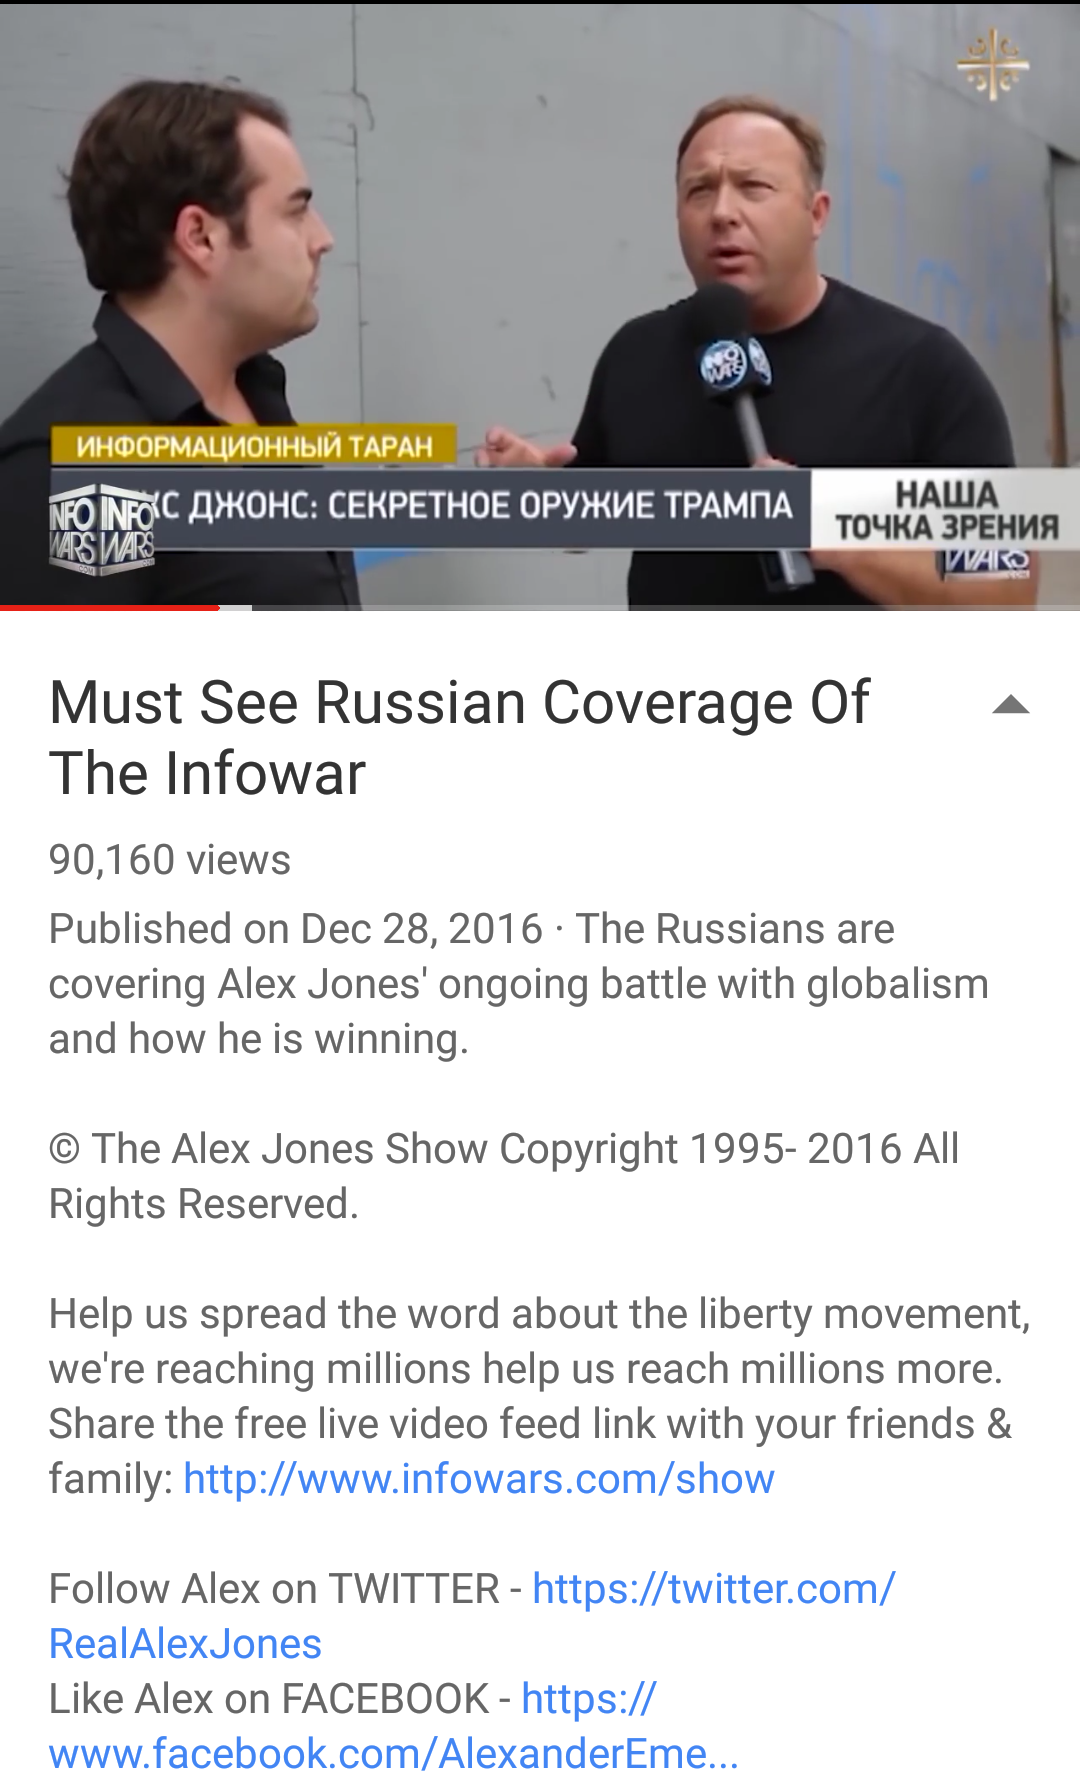 Ross on Russia, Fake News, and a Stupid Public